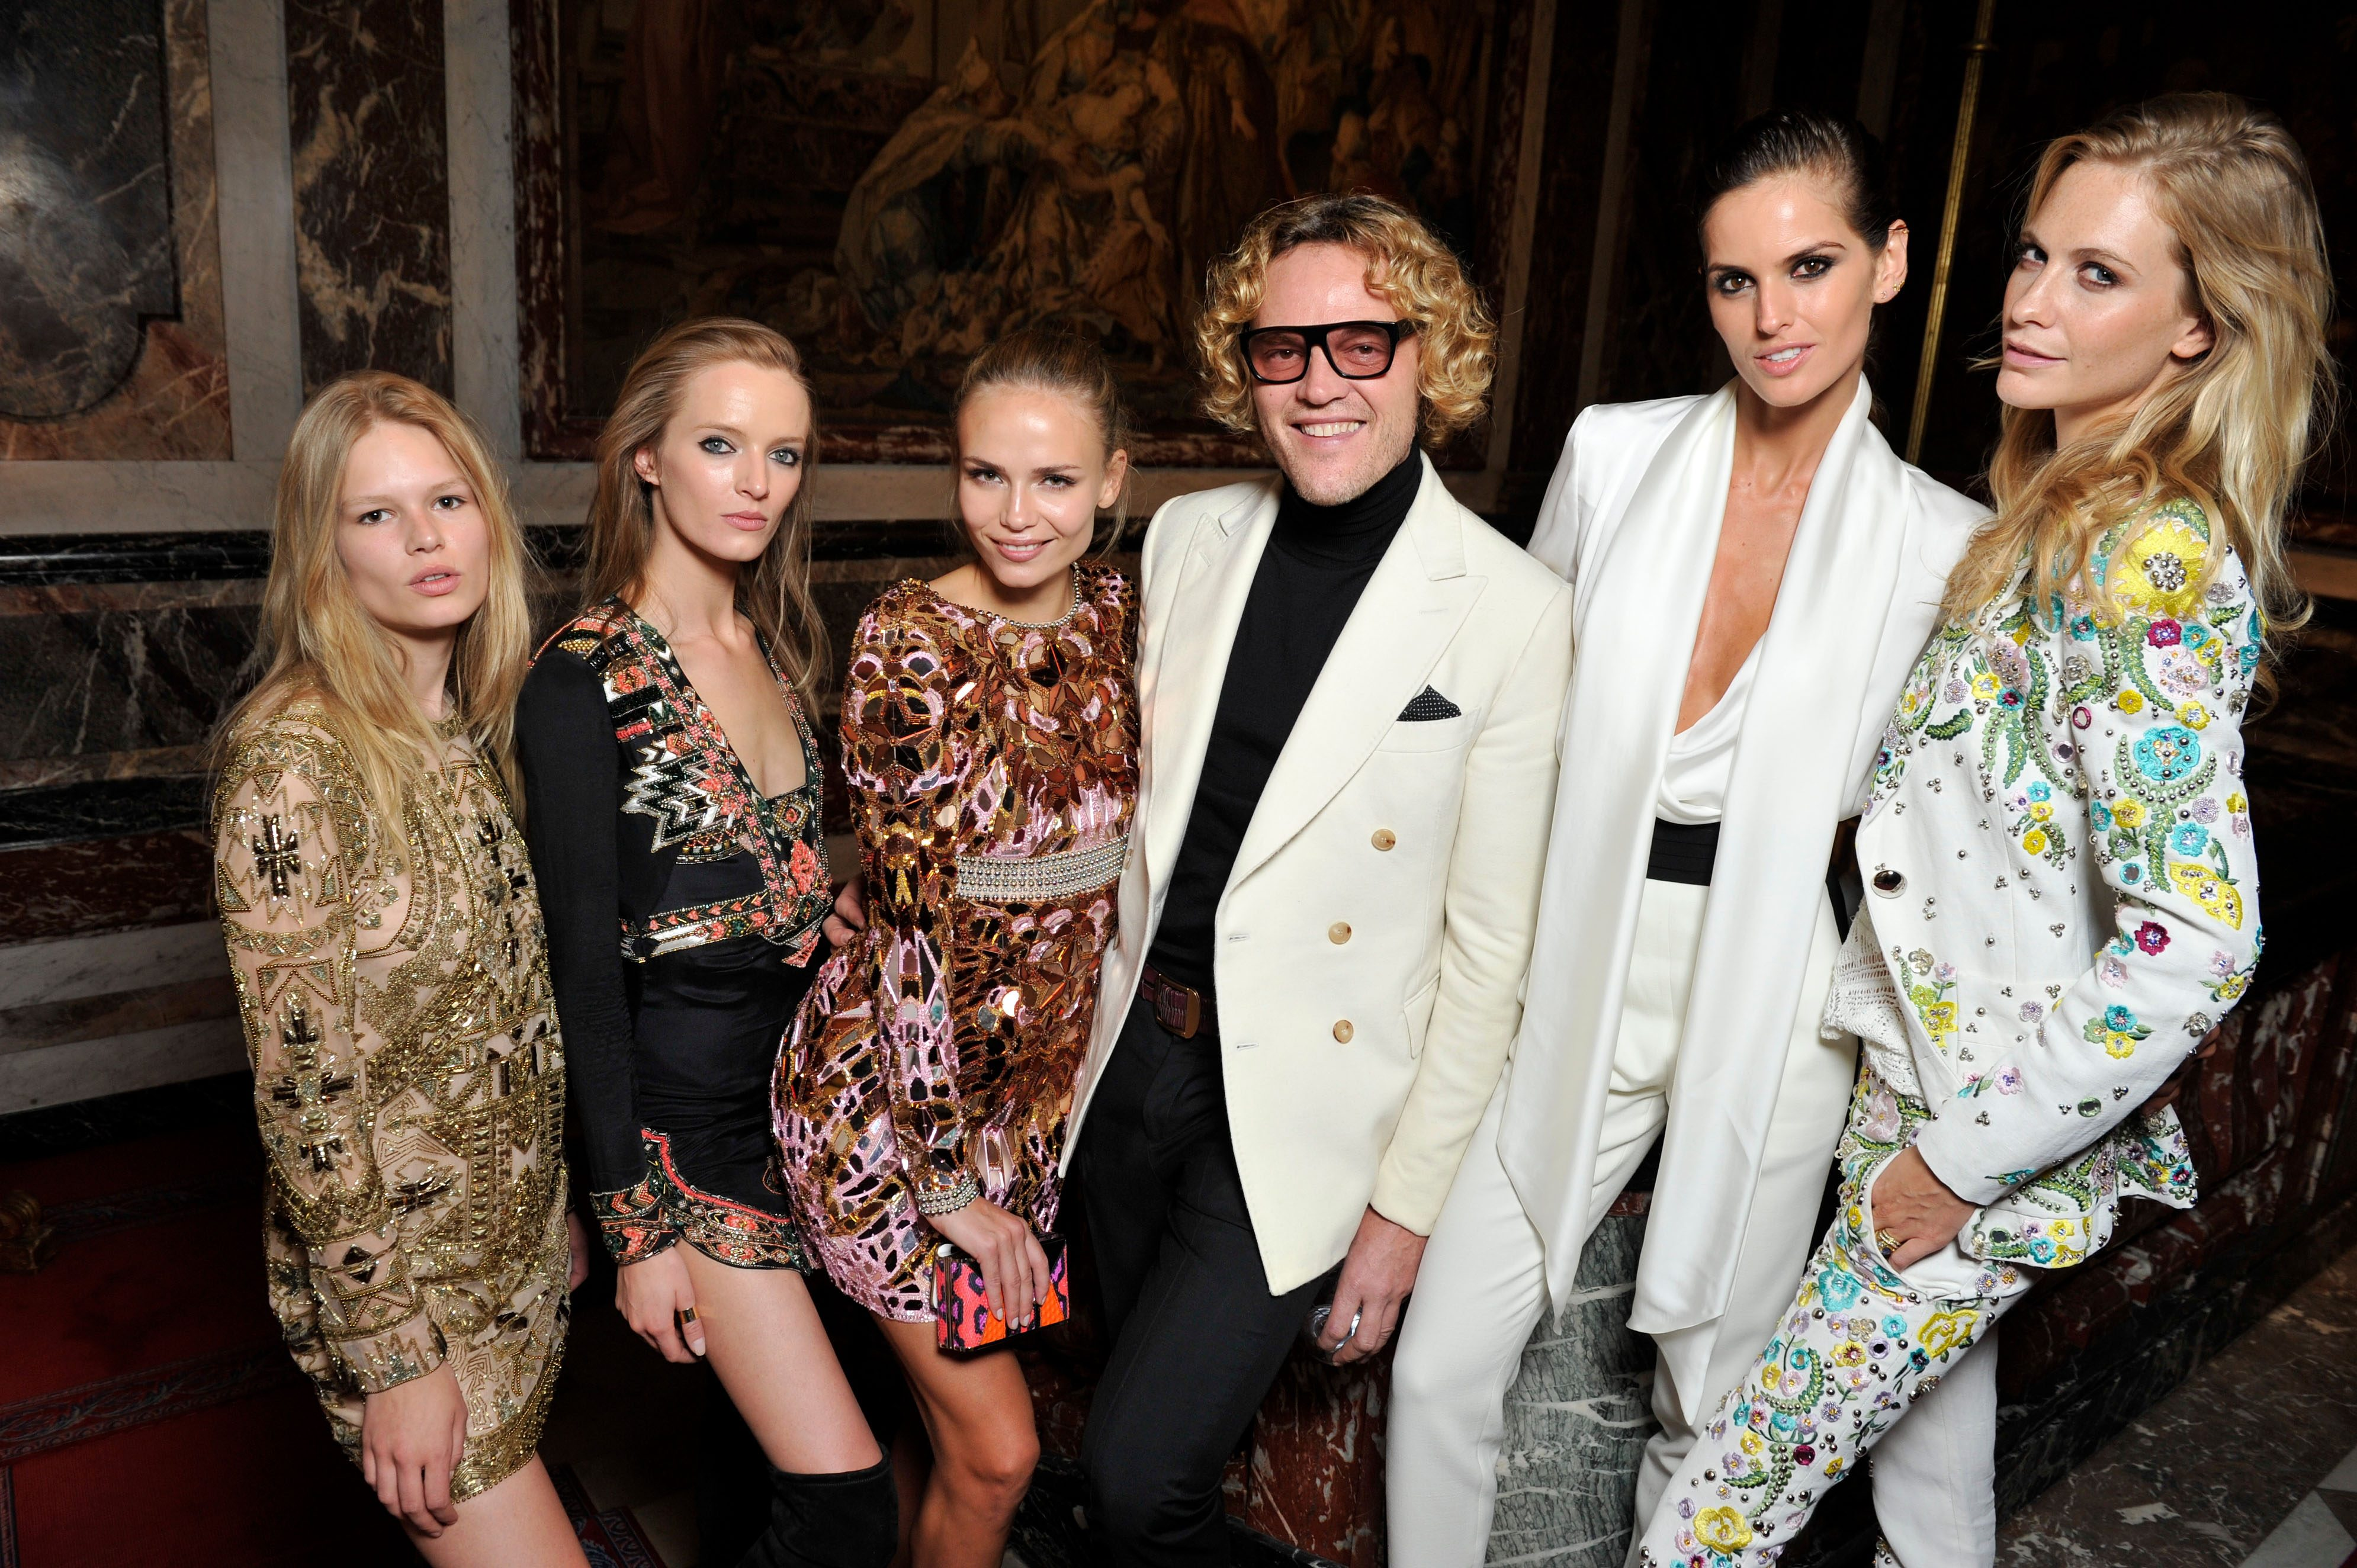 Spy: Pucci launches its new sunglasses collection in Paris ...